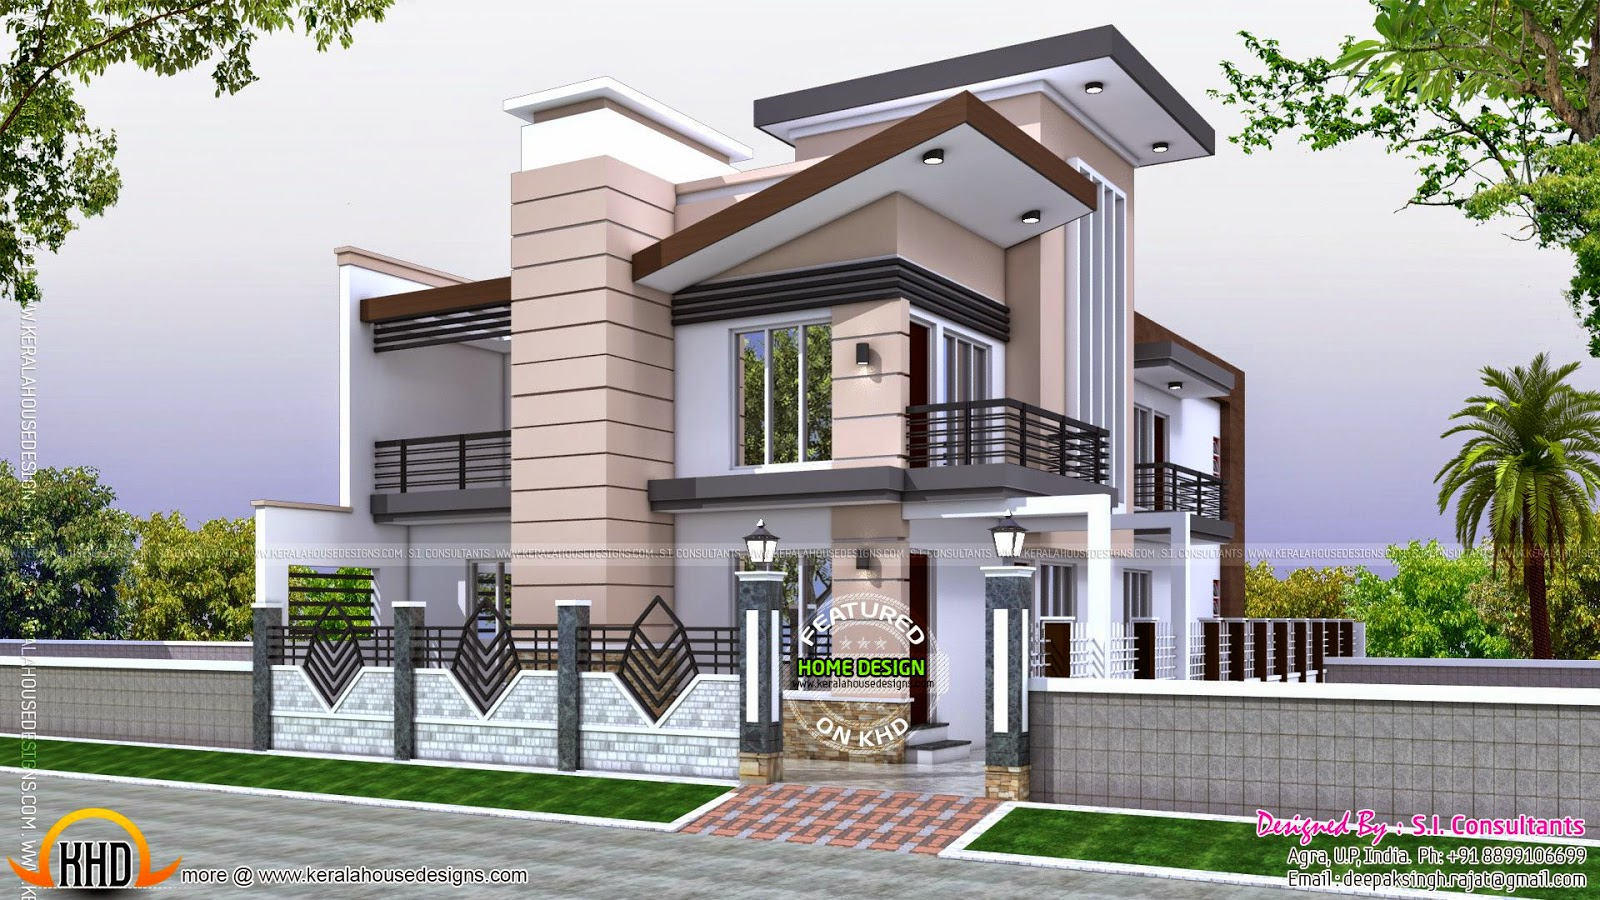 Indian home modern style kerala home design and floor plans Homes design images india